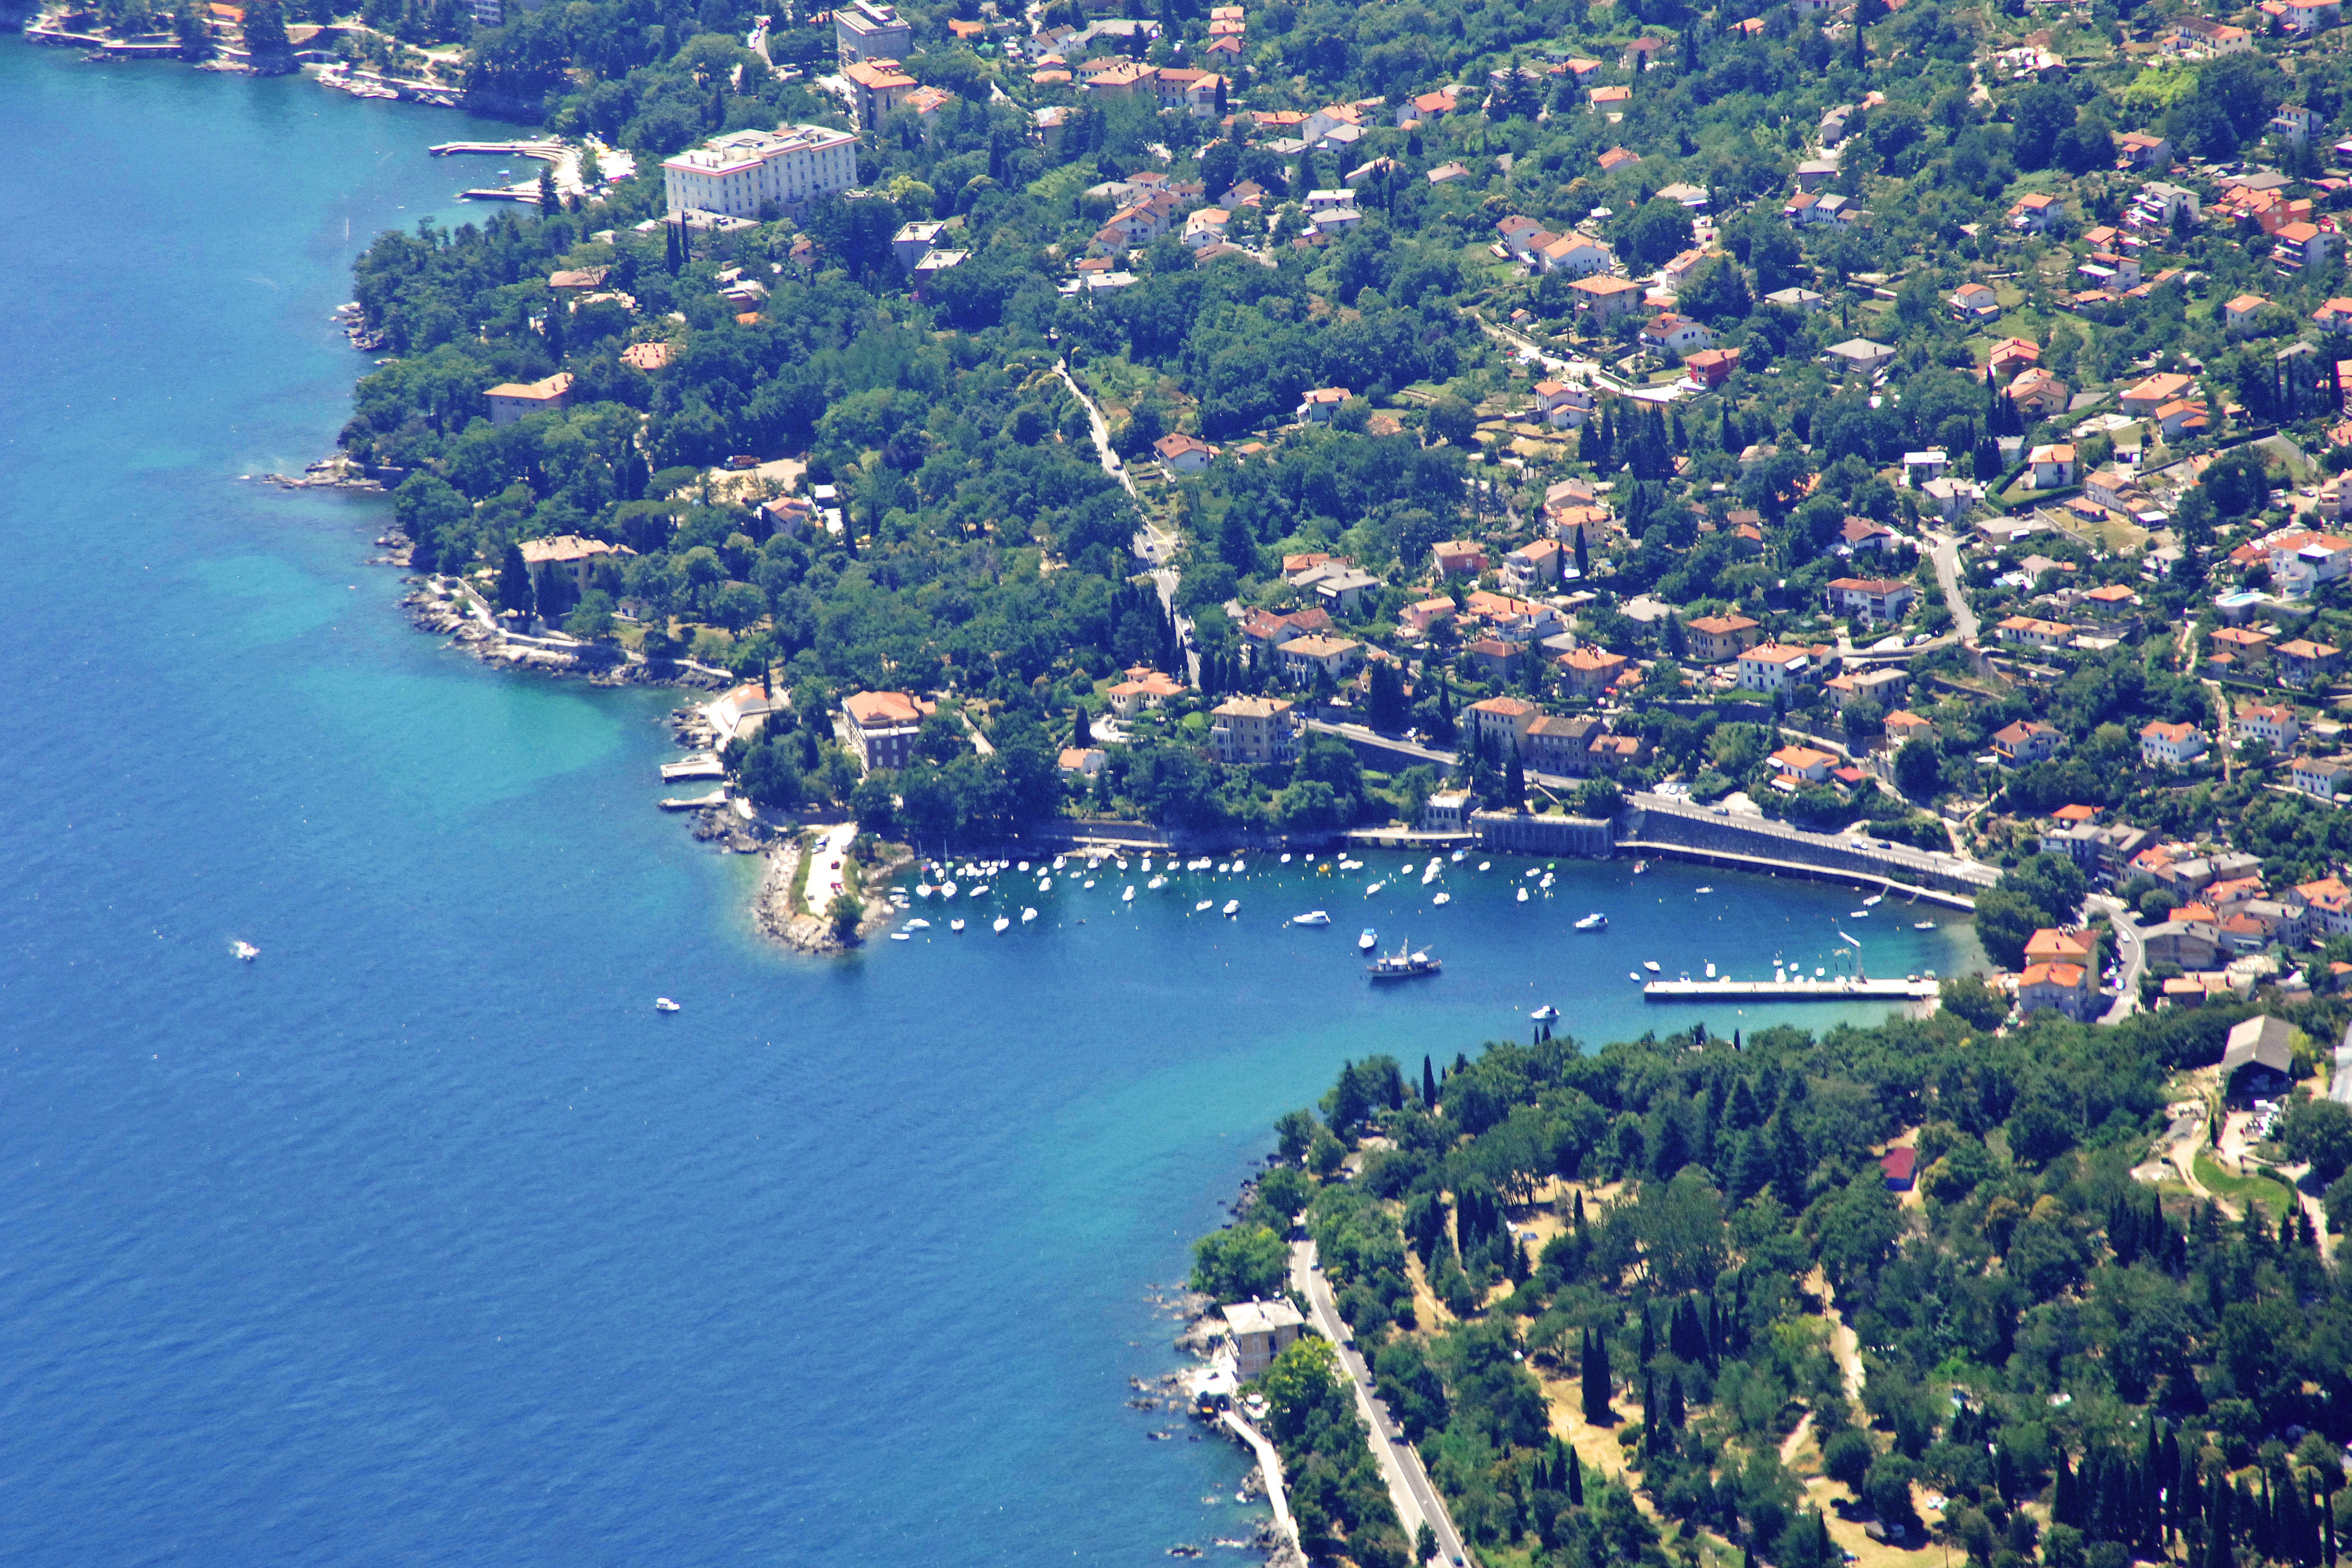 Ika Harbour in Ika, Croatia - Marina Reviews - Phone Number